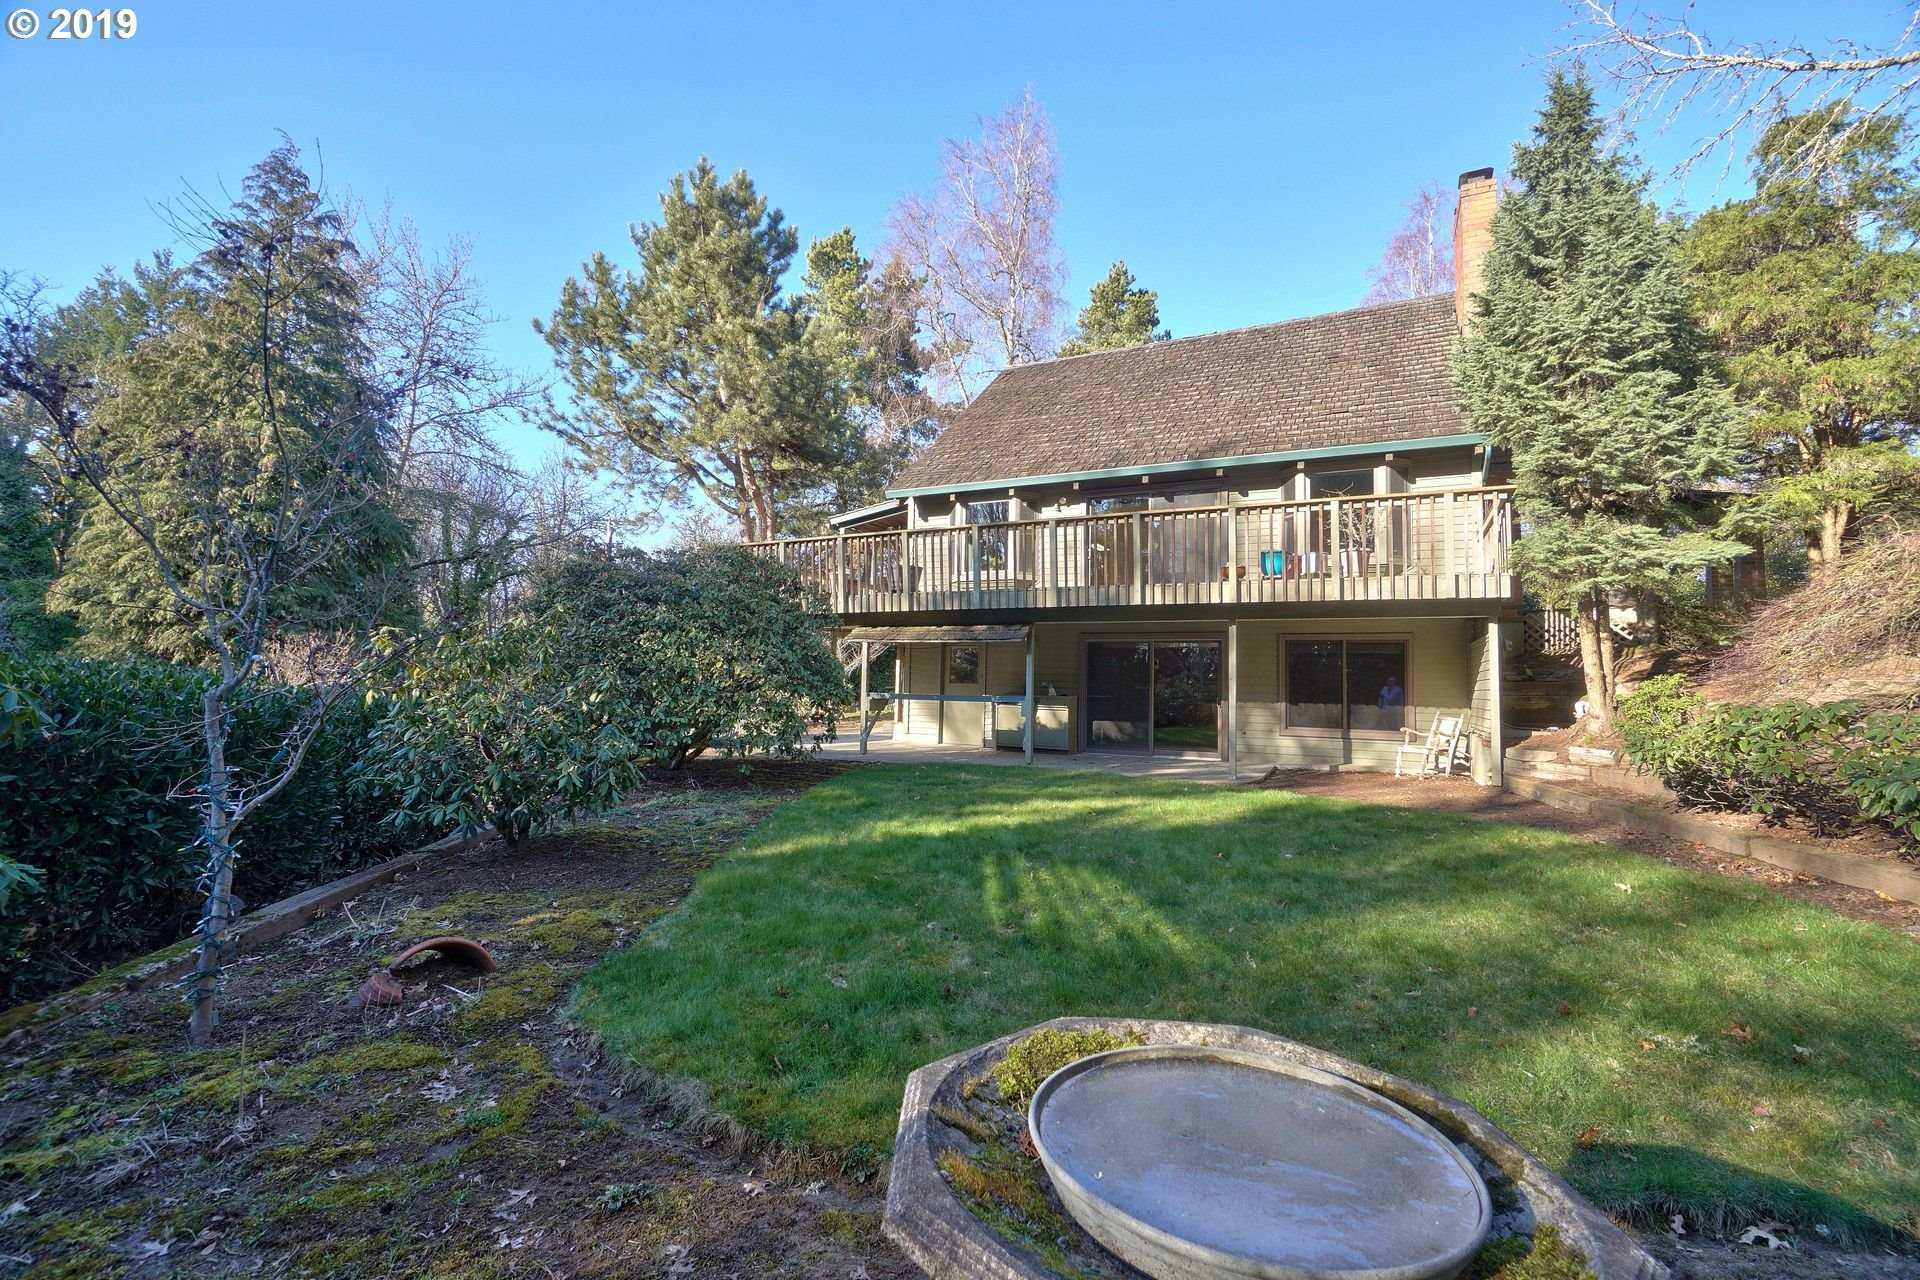 $519,900 - 3Br/3Ba -  for Sale in Bull Mountain, Tigard